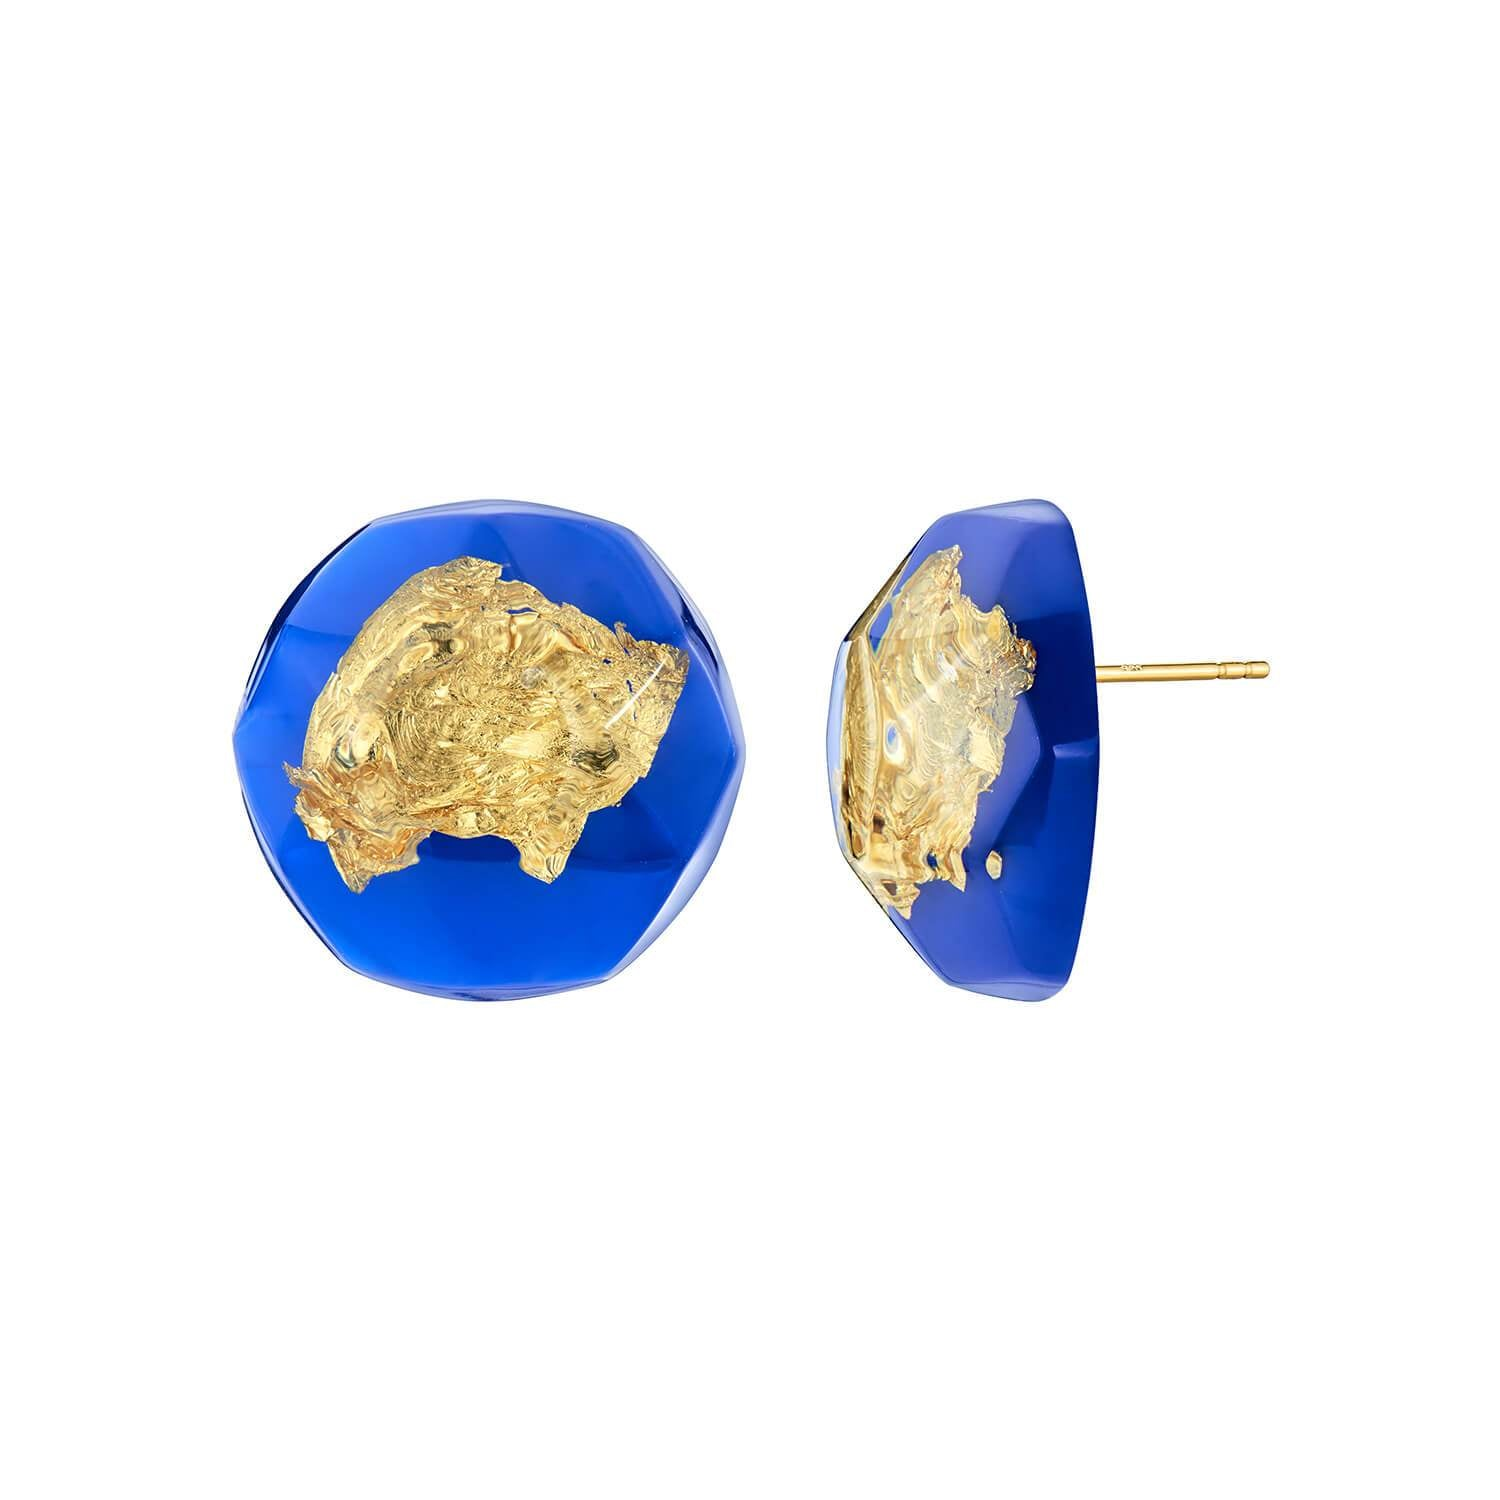 24K Gold Leaf Button Stud Earrings